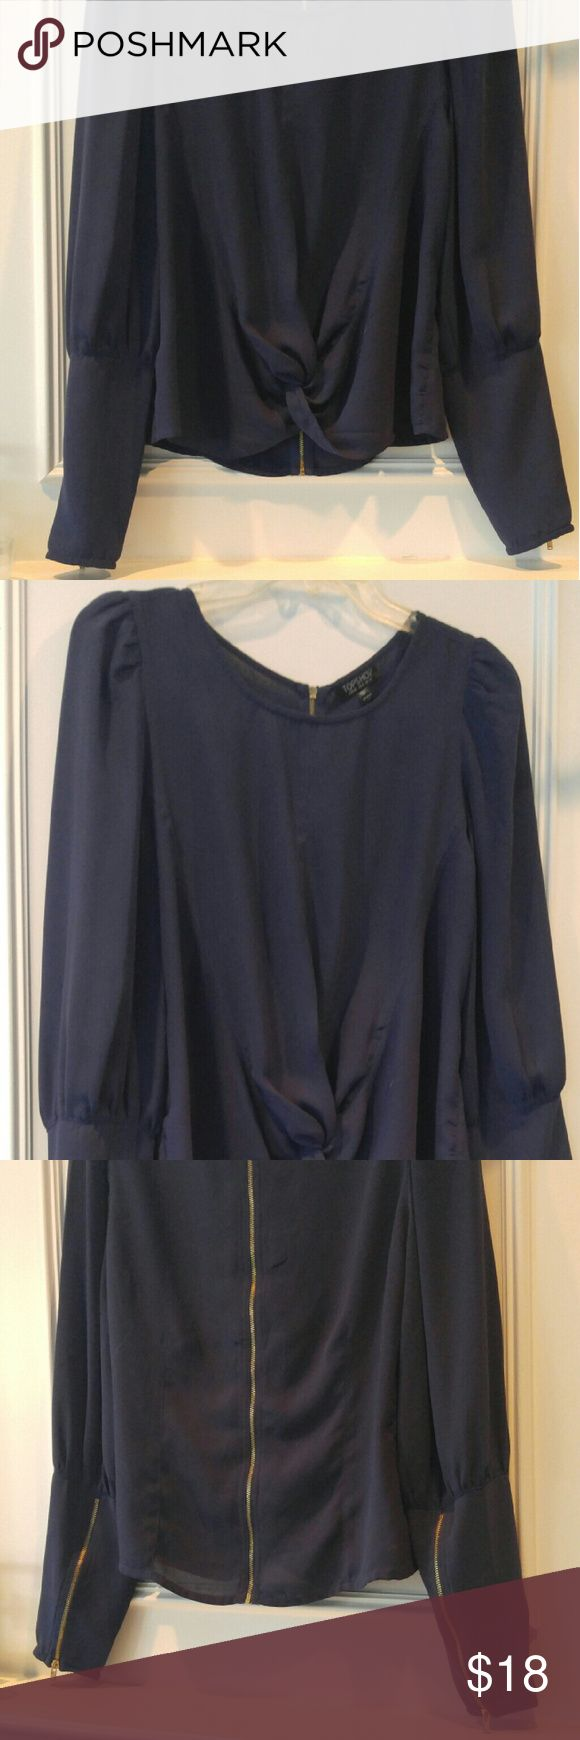 Topshop navy top Topshop top with gold zippered back and wrist and knotted hem. Topshop Tops